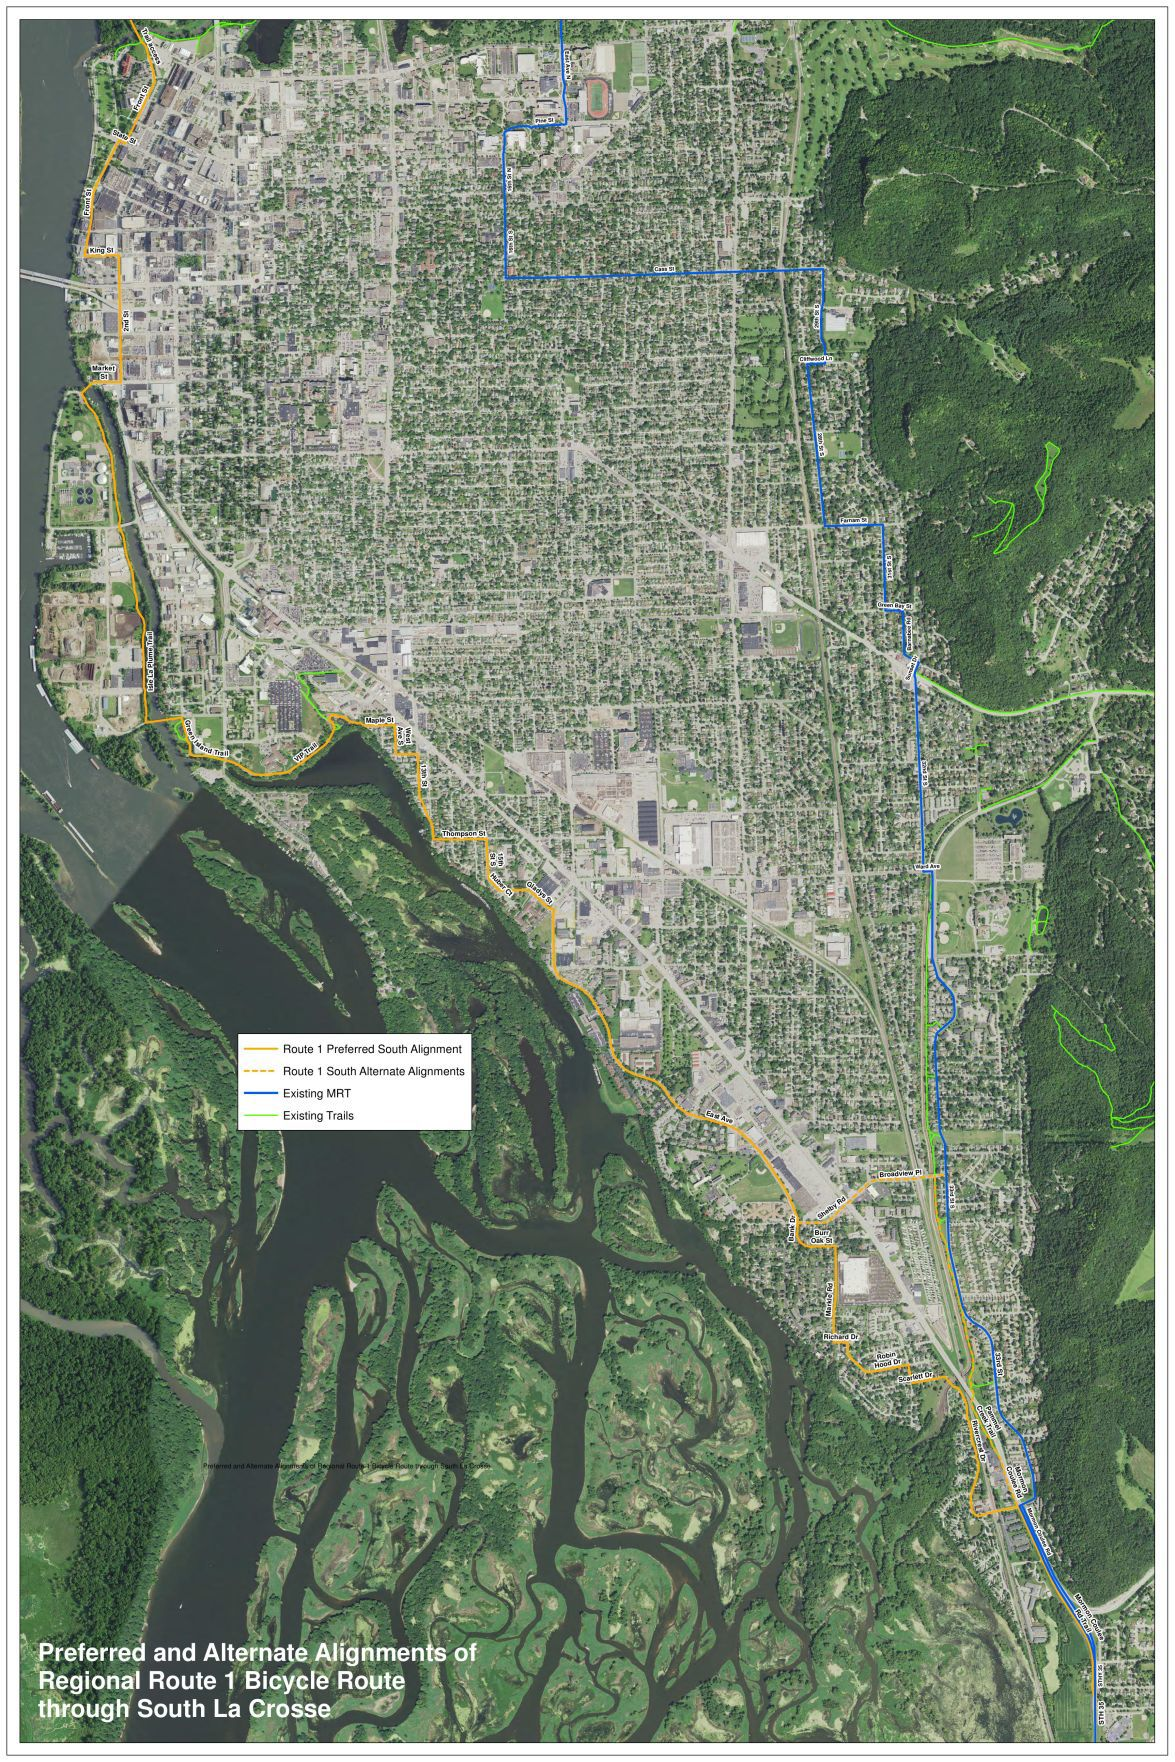 Mississippi River Trail proposed route South